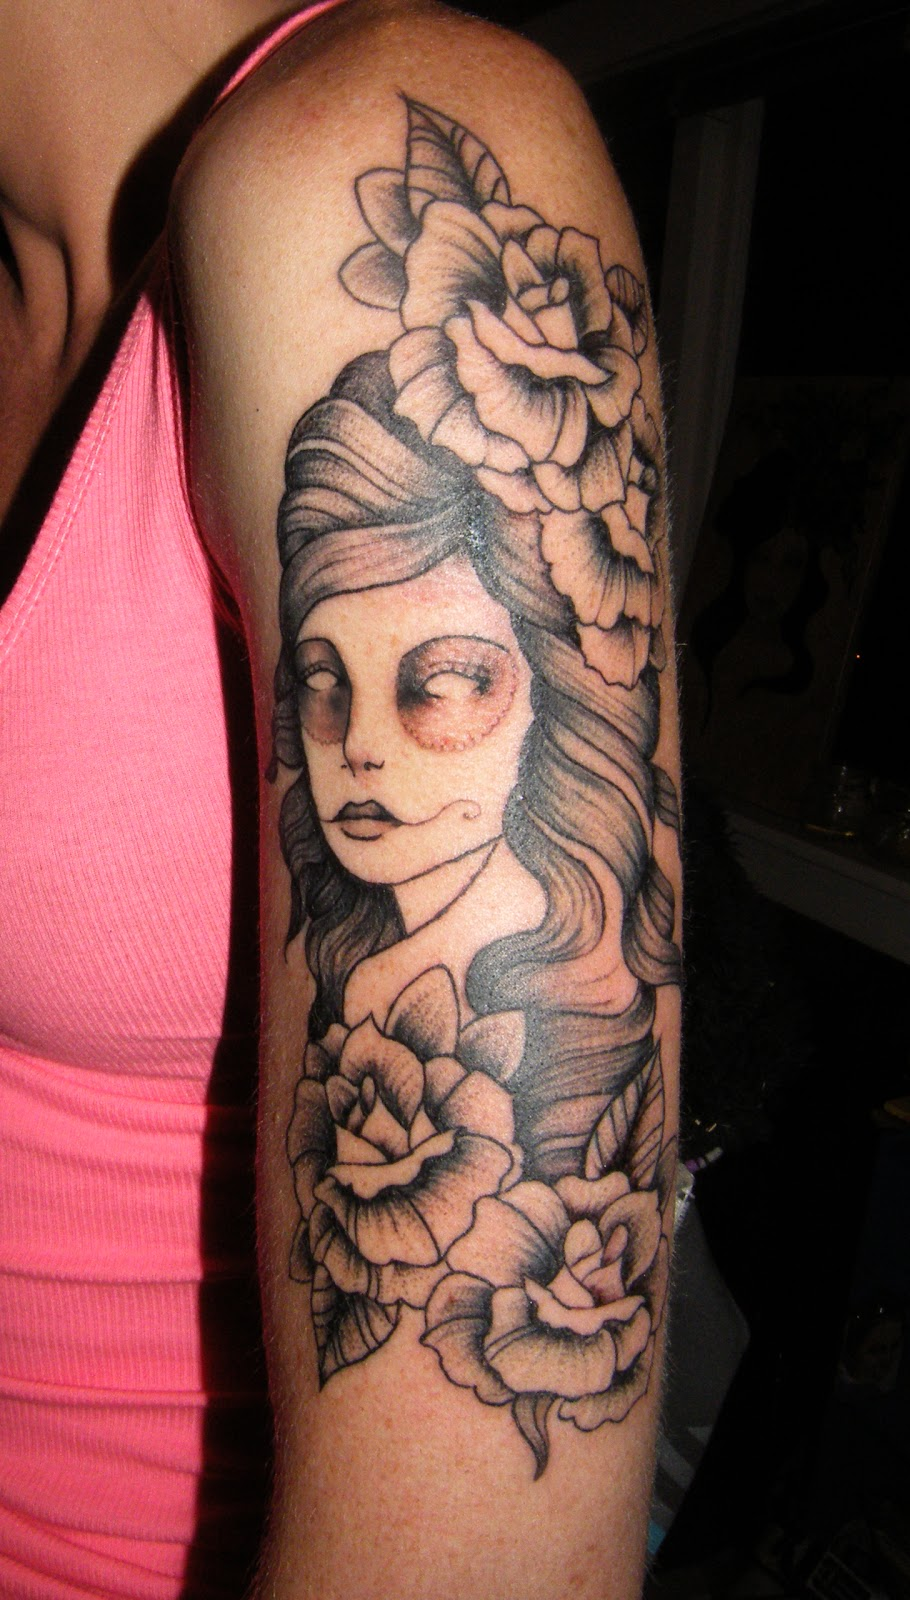 Girl with Arm Tattoo